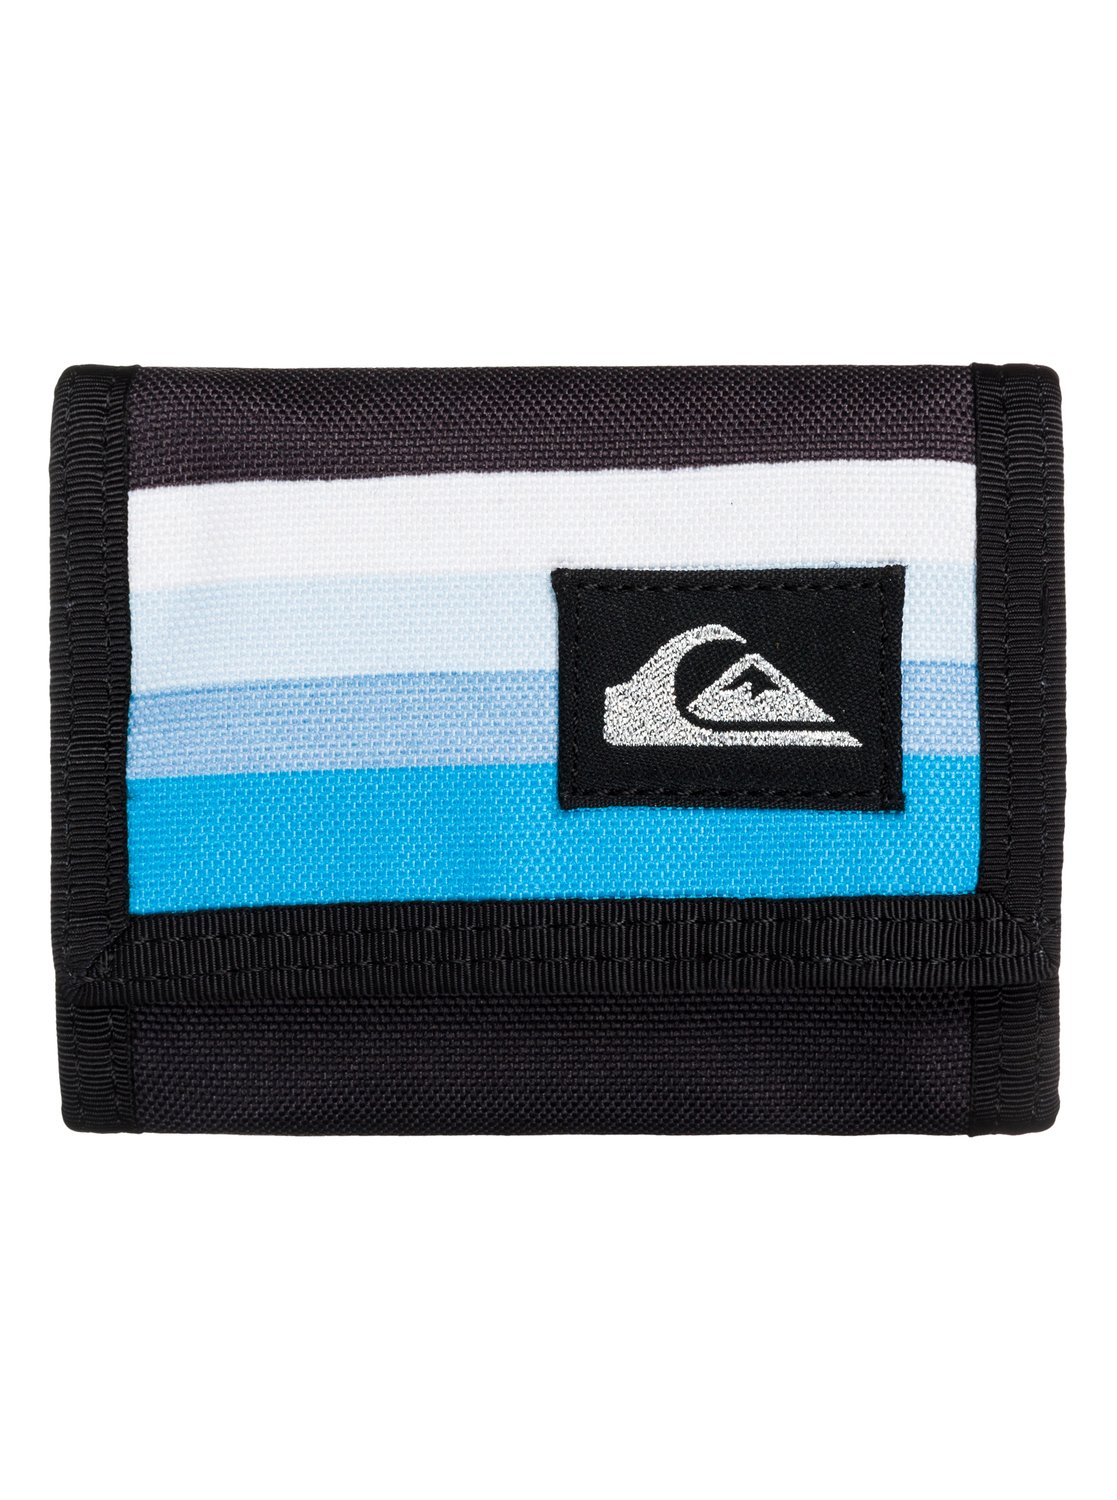 Boys 8-16 Collective Youth Wallet UQBAA03000 | Quiksilver